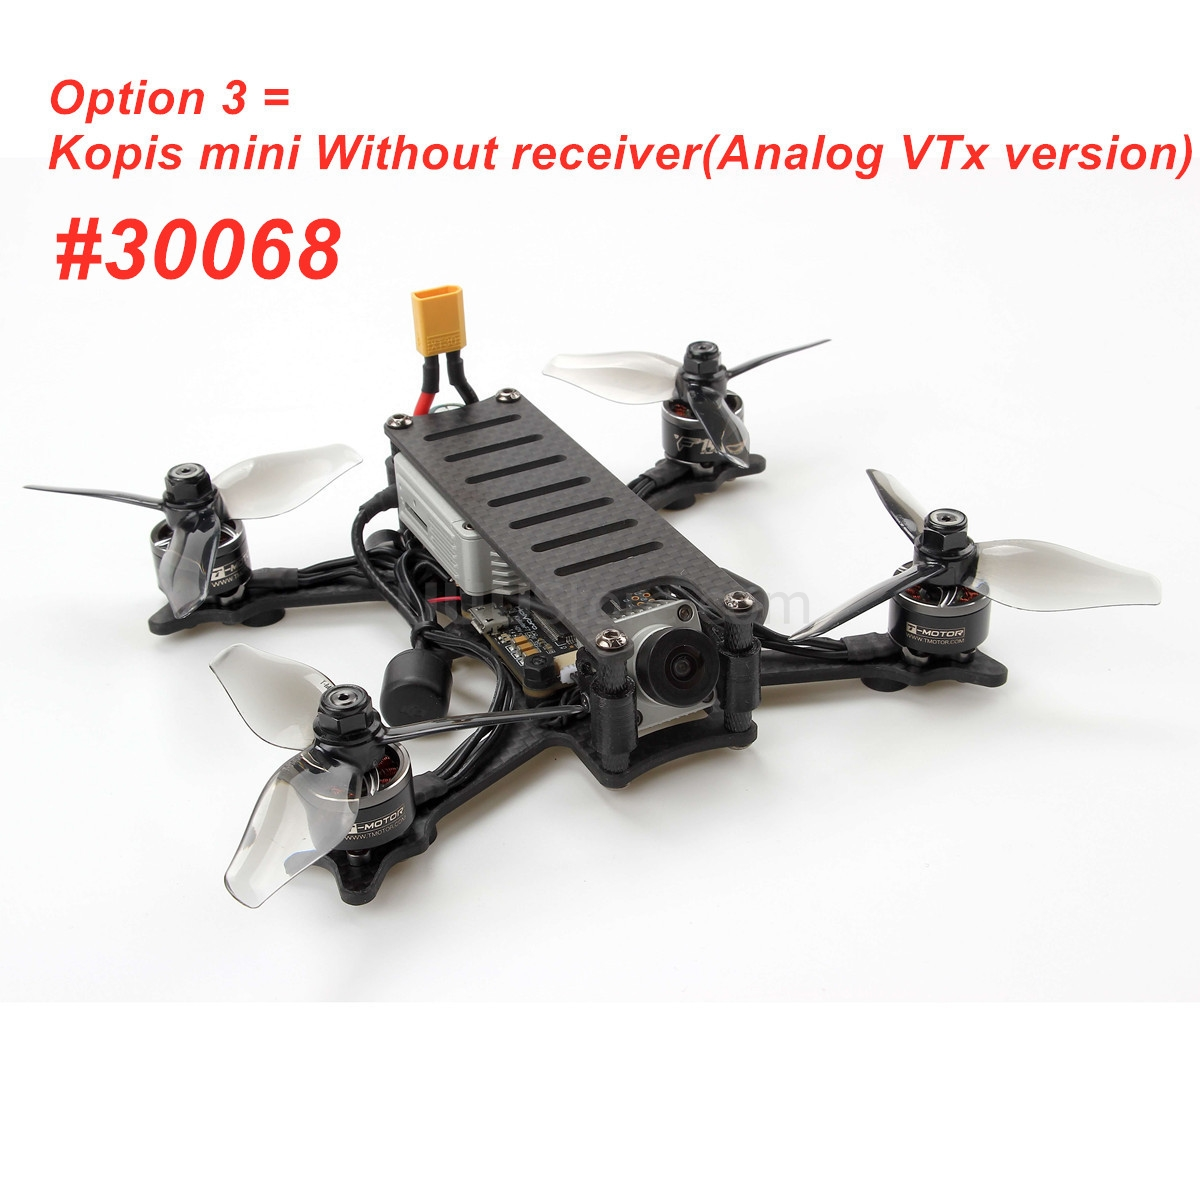 Holybro Kopis Mini FPV Racing Drone 148.6mm 3 Inch Frame F7 FC FPV SYSTEM RC Quadcopter PNP BNF Optional